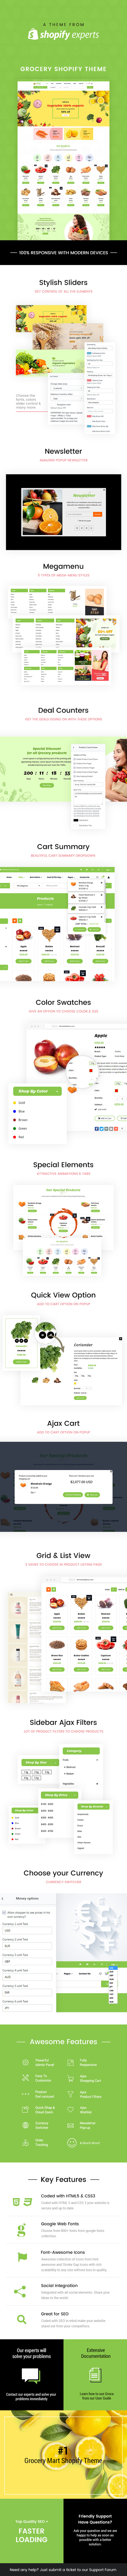 Groca - Grocery, Supermarket Shopify Theme - 1